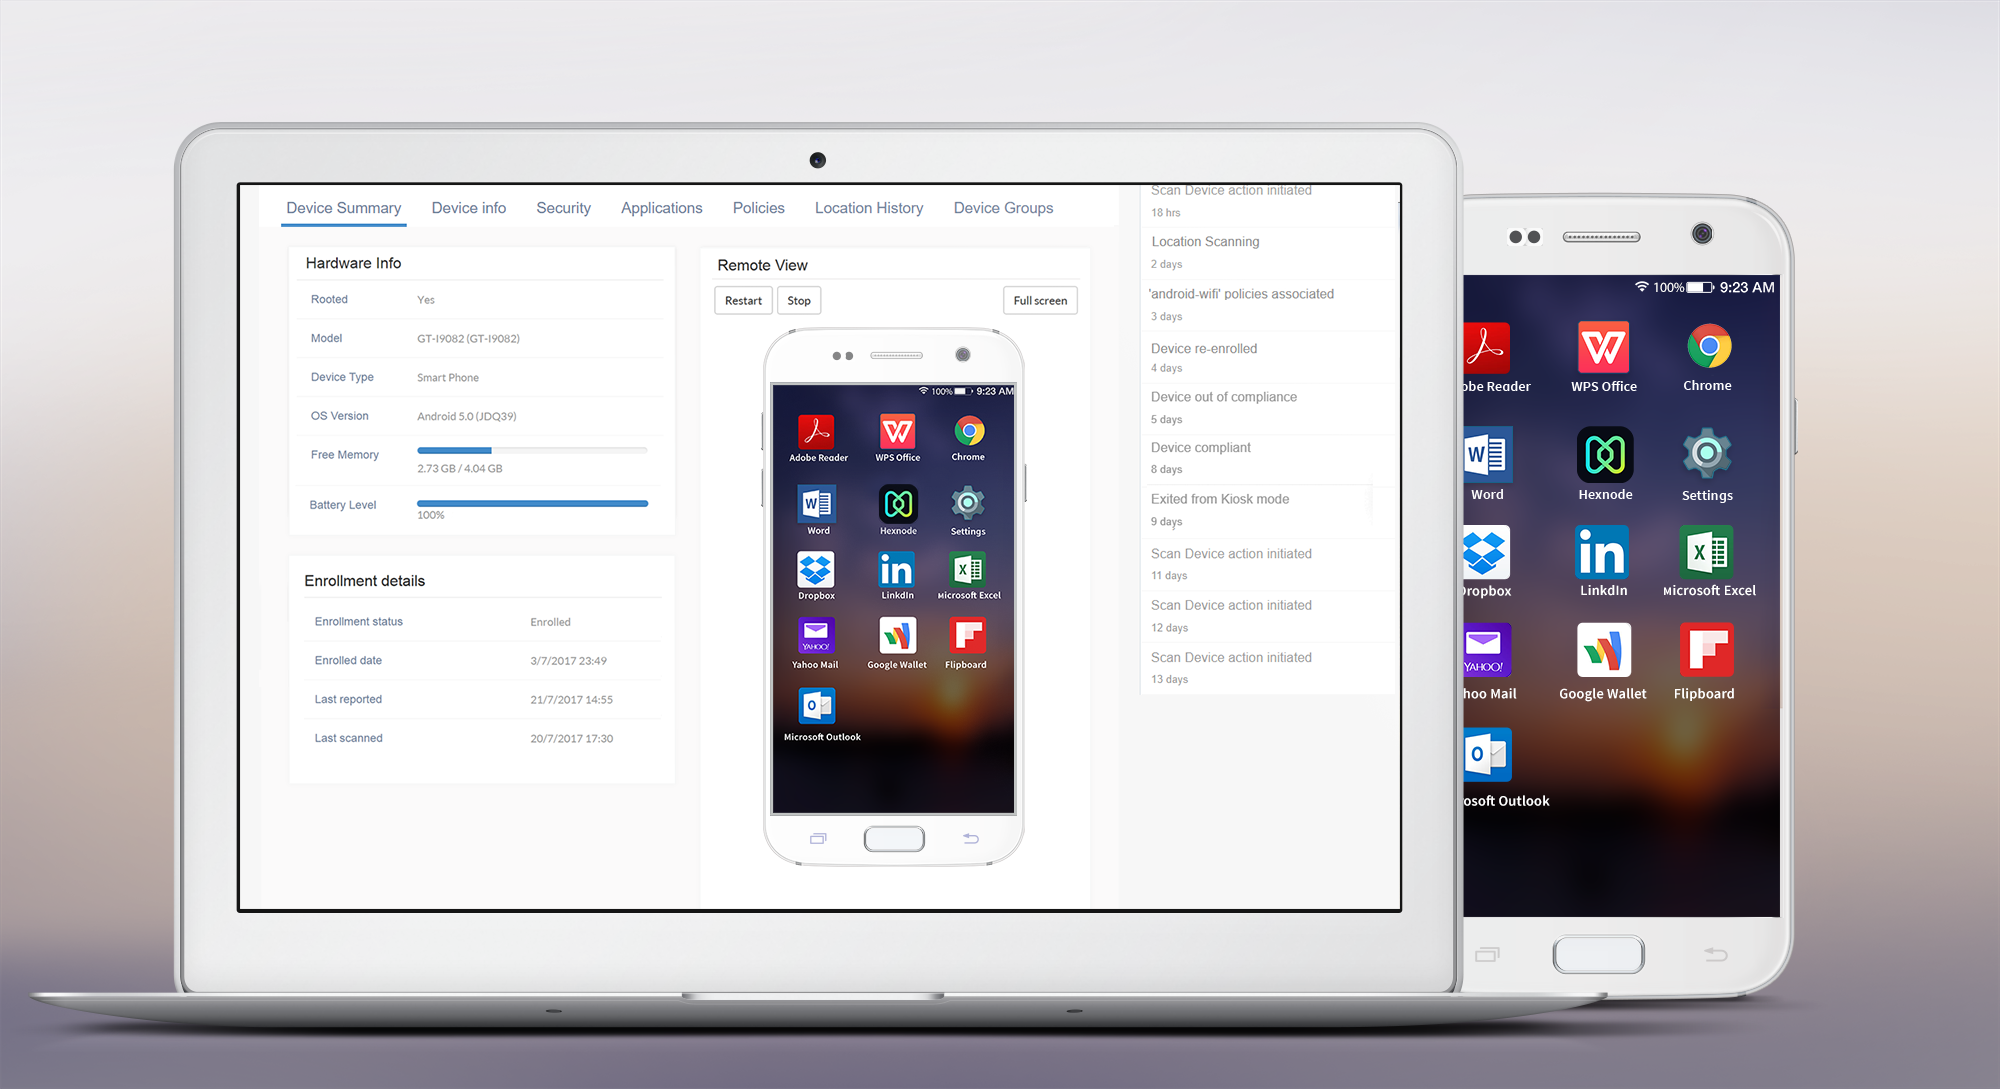 Hexnode MDM Announces Support for Remote Control in Samsung